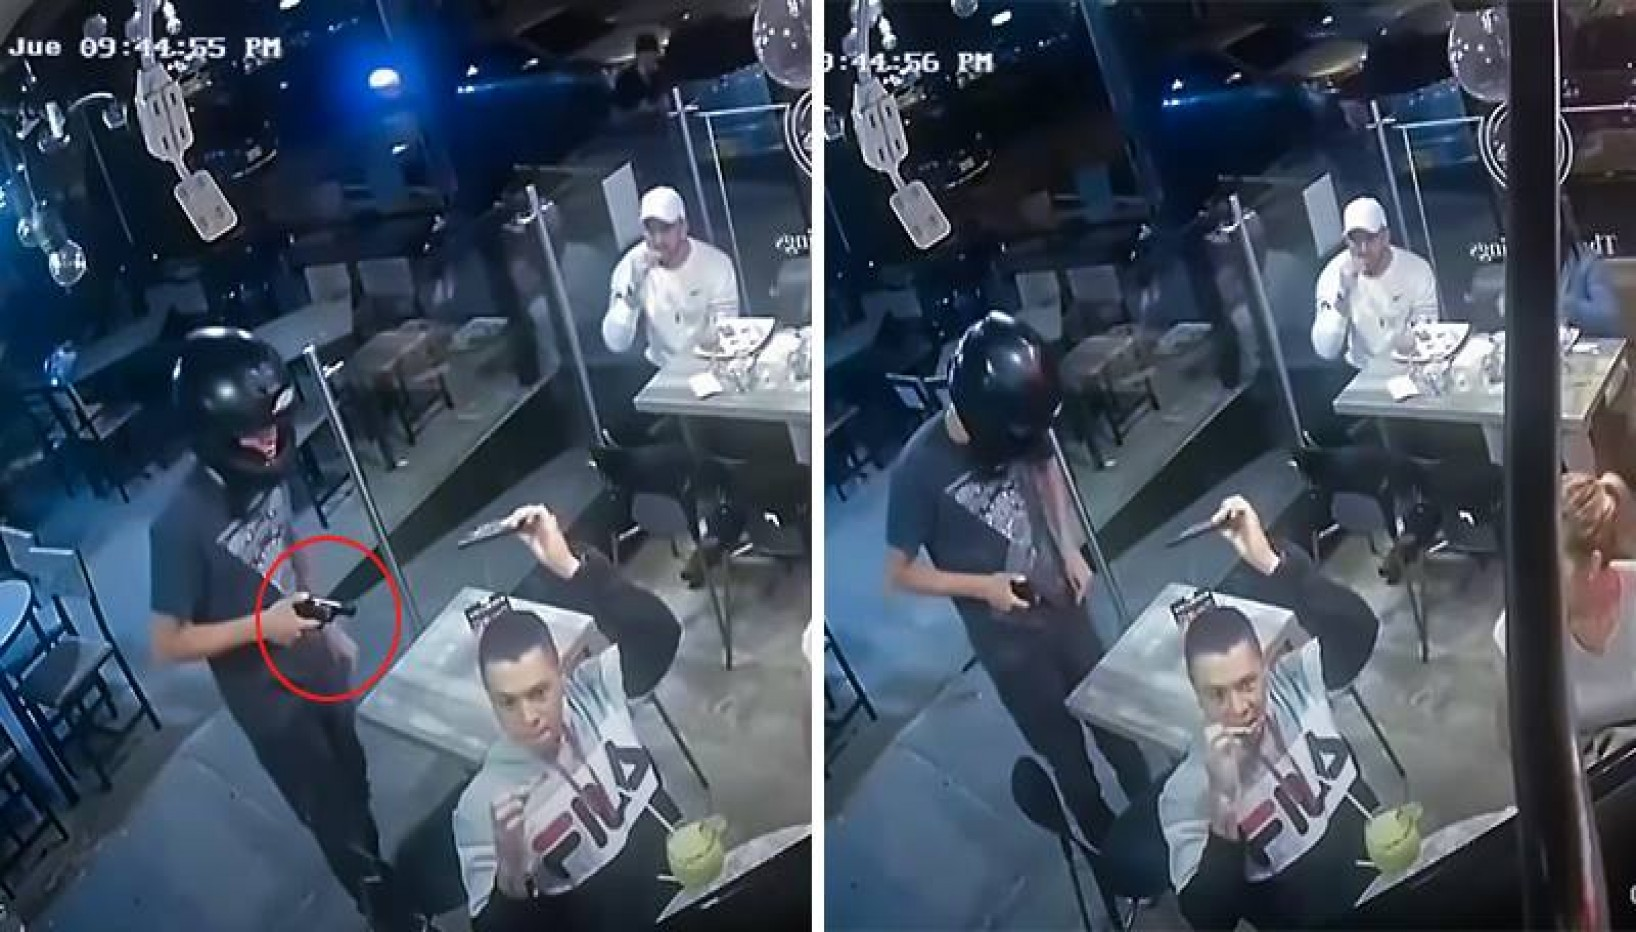 Man Calmly Continues Eating Chicken Wings Despite Being Held At Gun Point During A Robbery